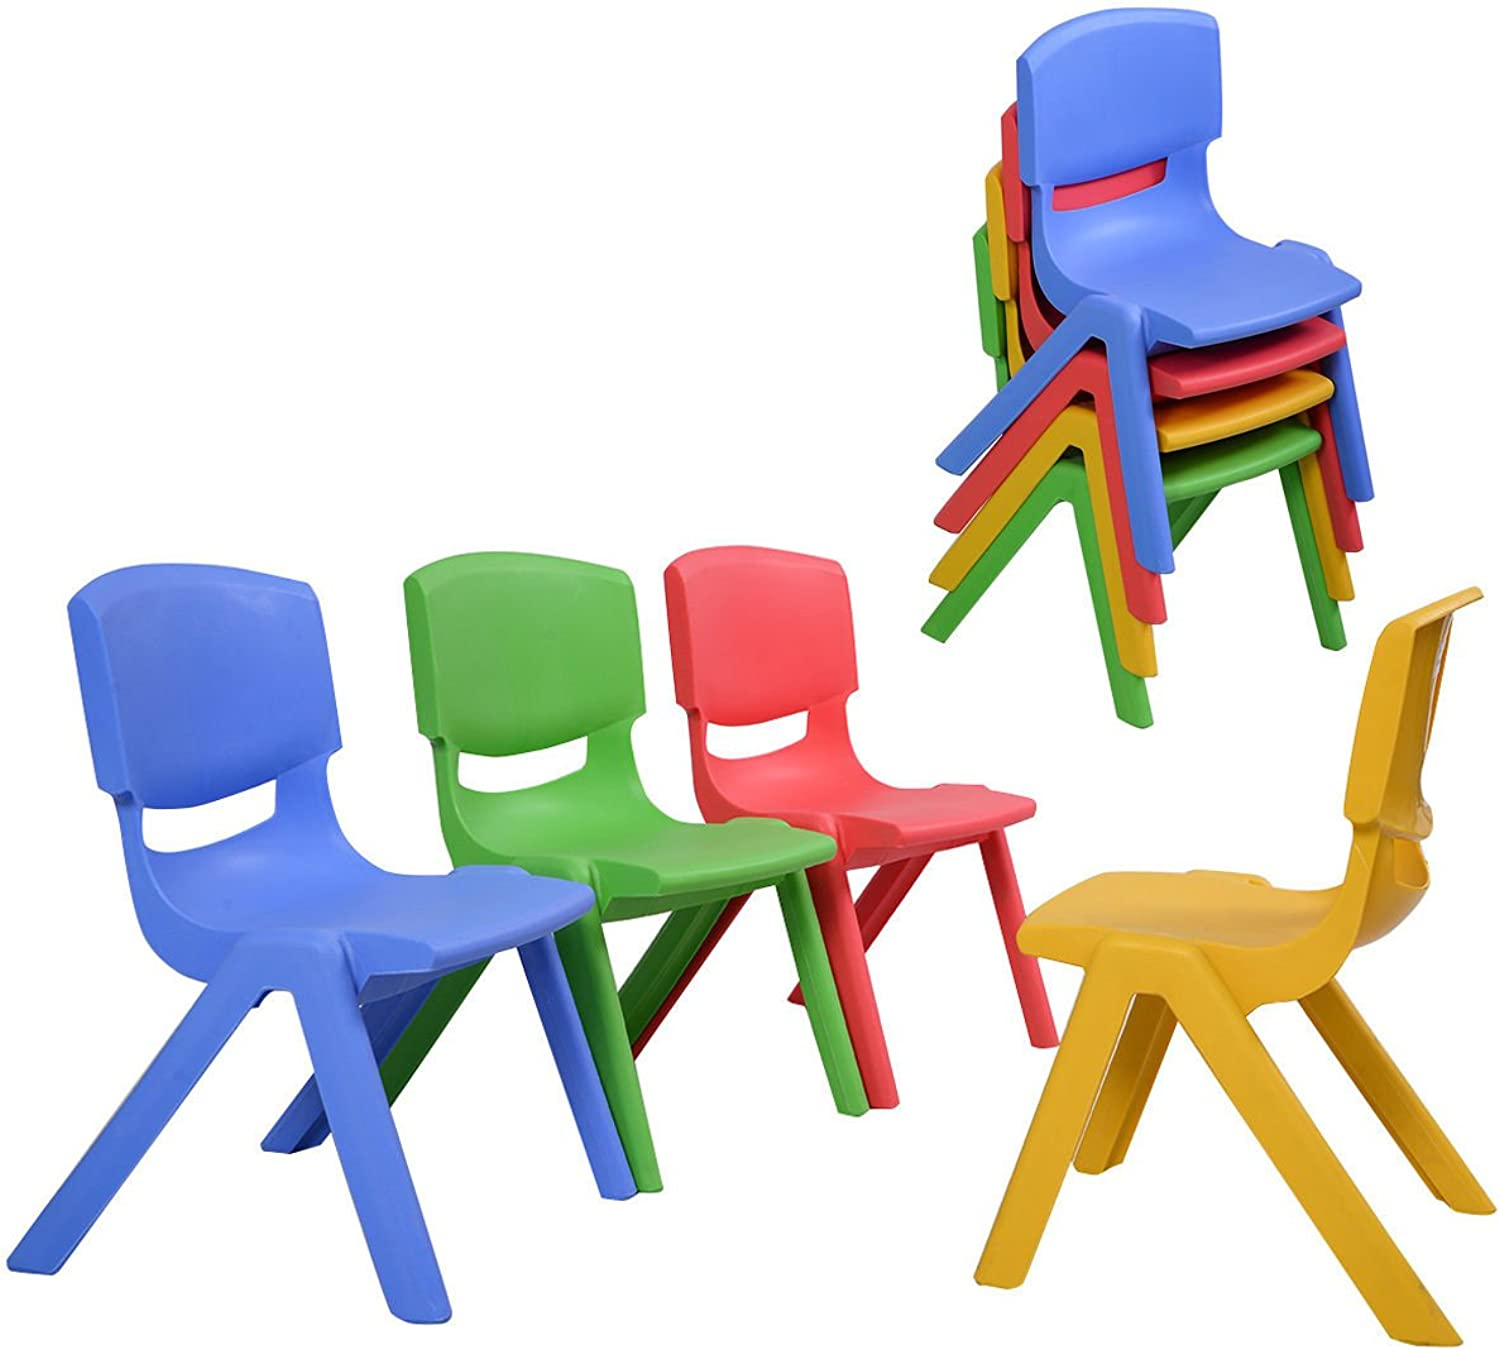 Costzon Kids Chairs, Stackable Plastic Learn and Play Chair for School Home Play Room, colorful Chairs for Toddlers, Boys, Girls, Set of 2